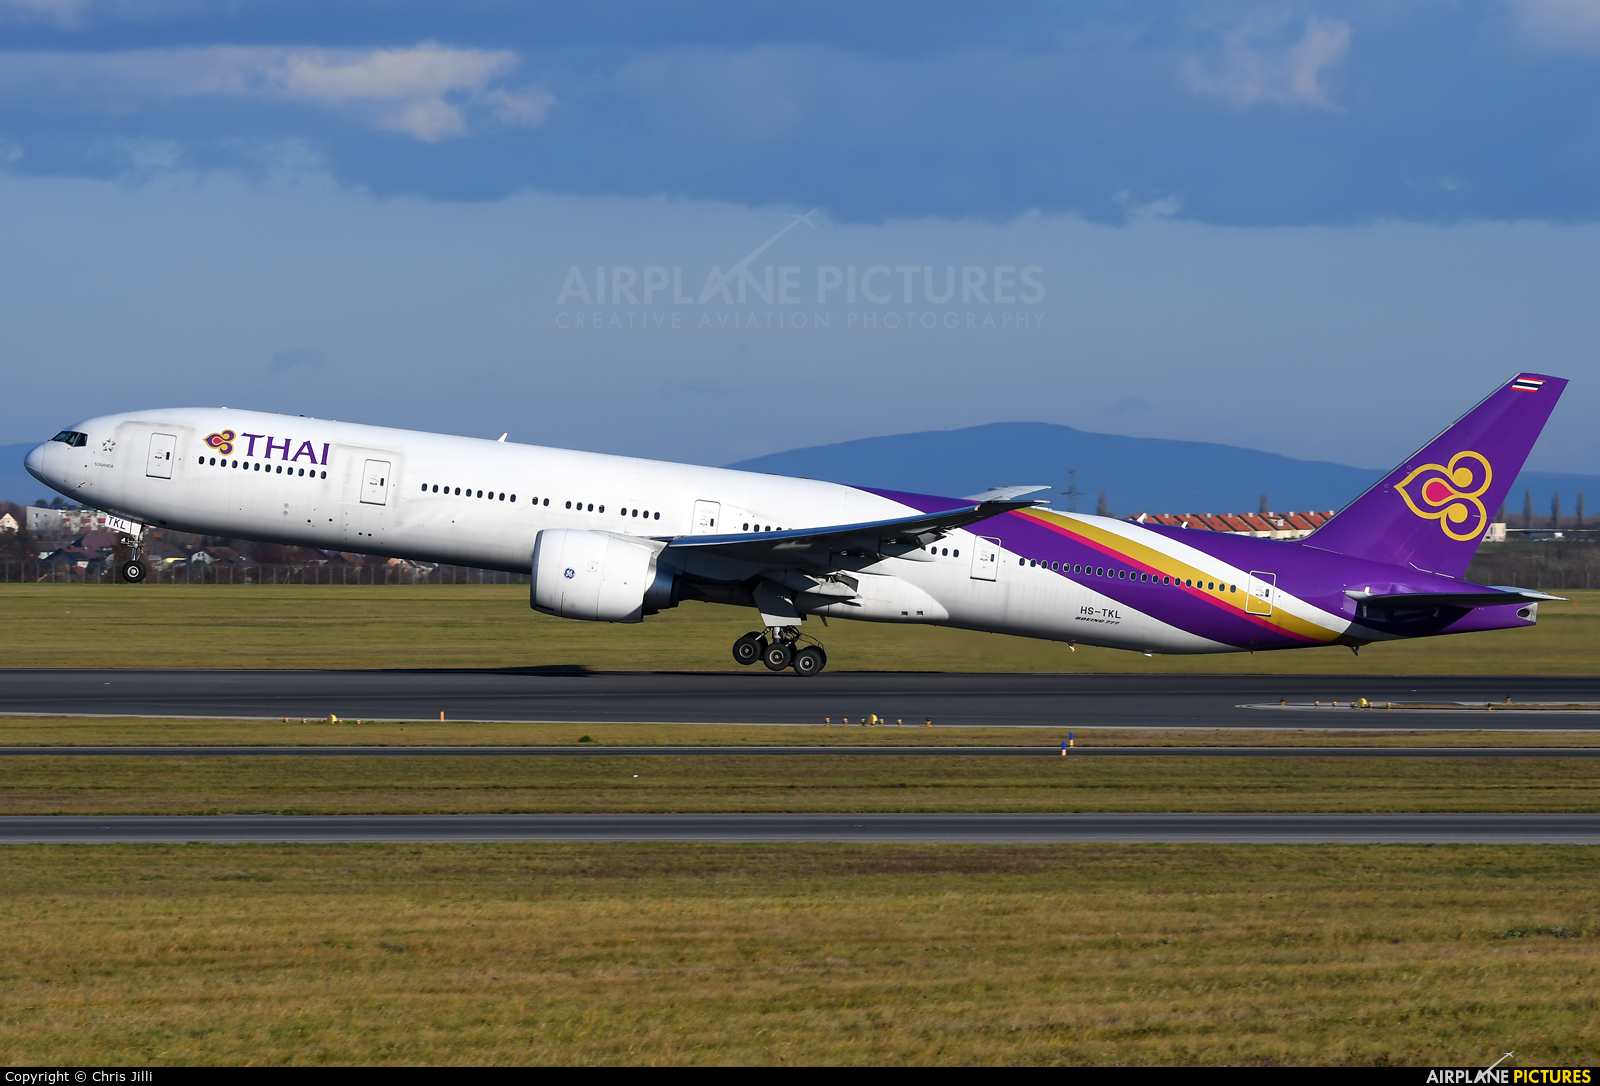 Thai Airways HS-TKL aircraft at Vienna - Schwechat